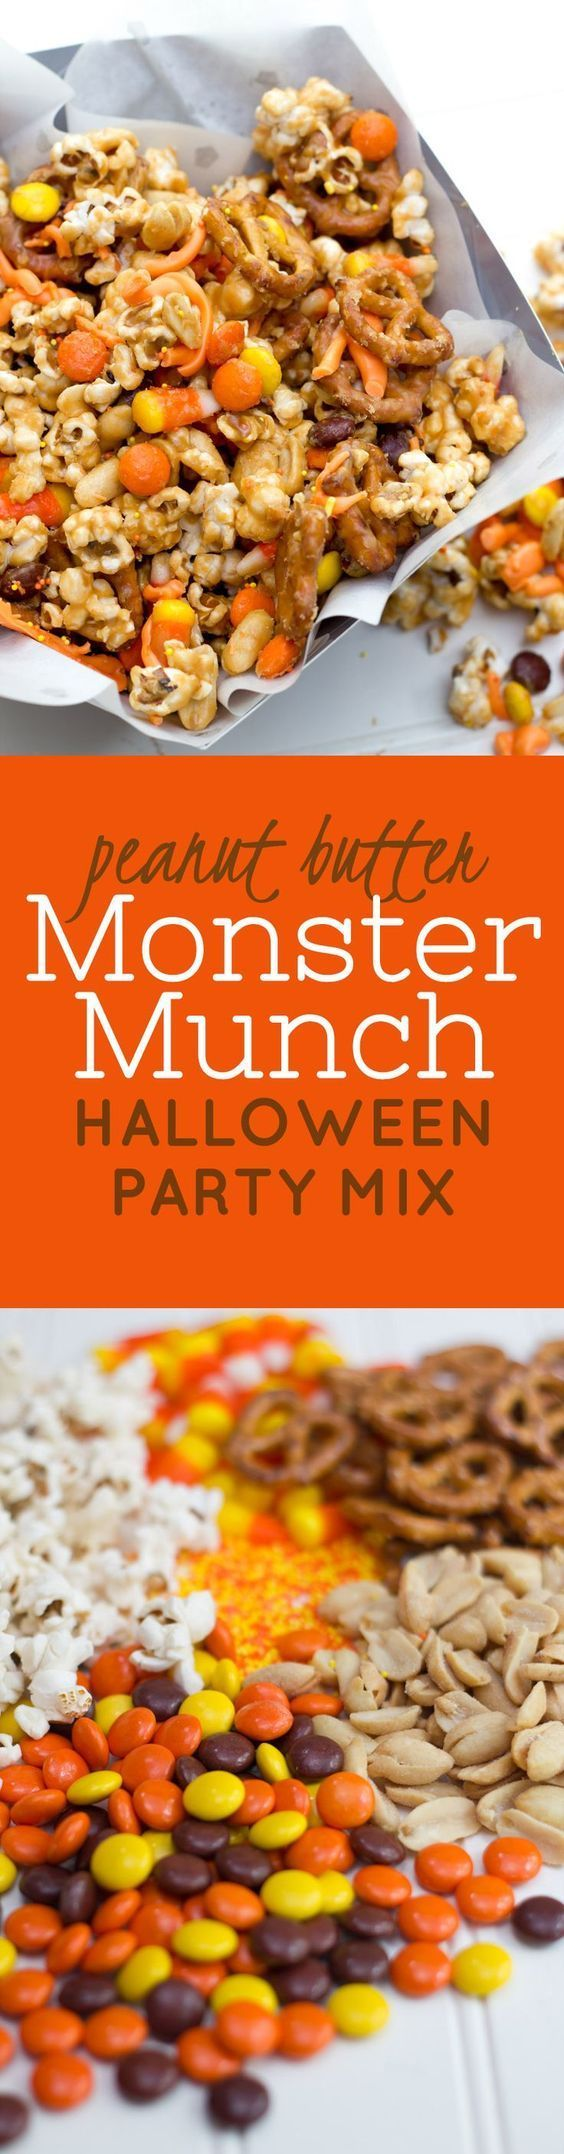 Peanut Butter Monster Munch Halloween Party Mix.